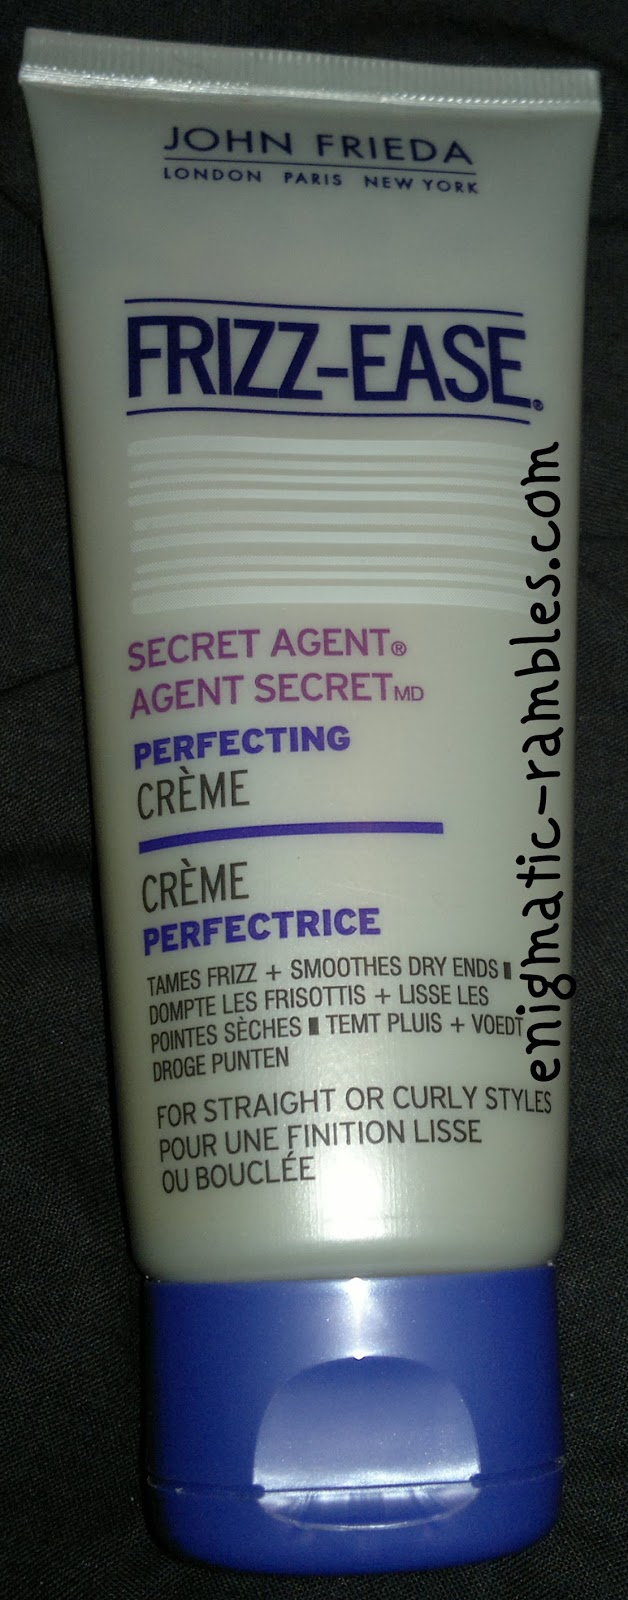 review-john-frieda-touch-up-creme-secret-agent